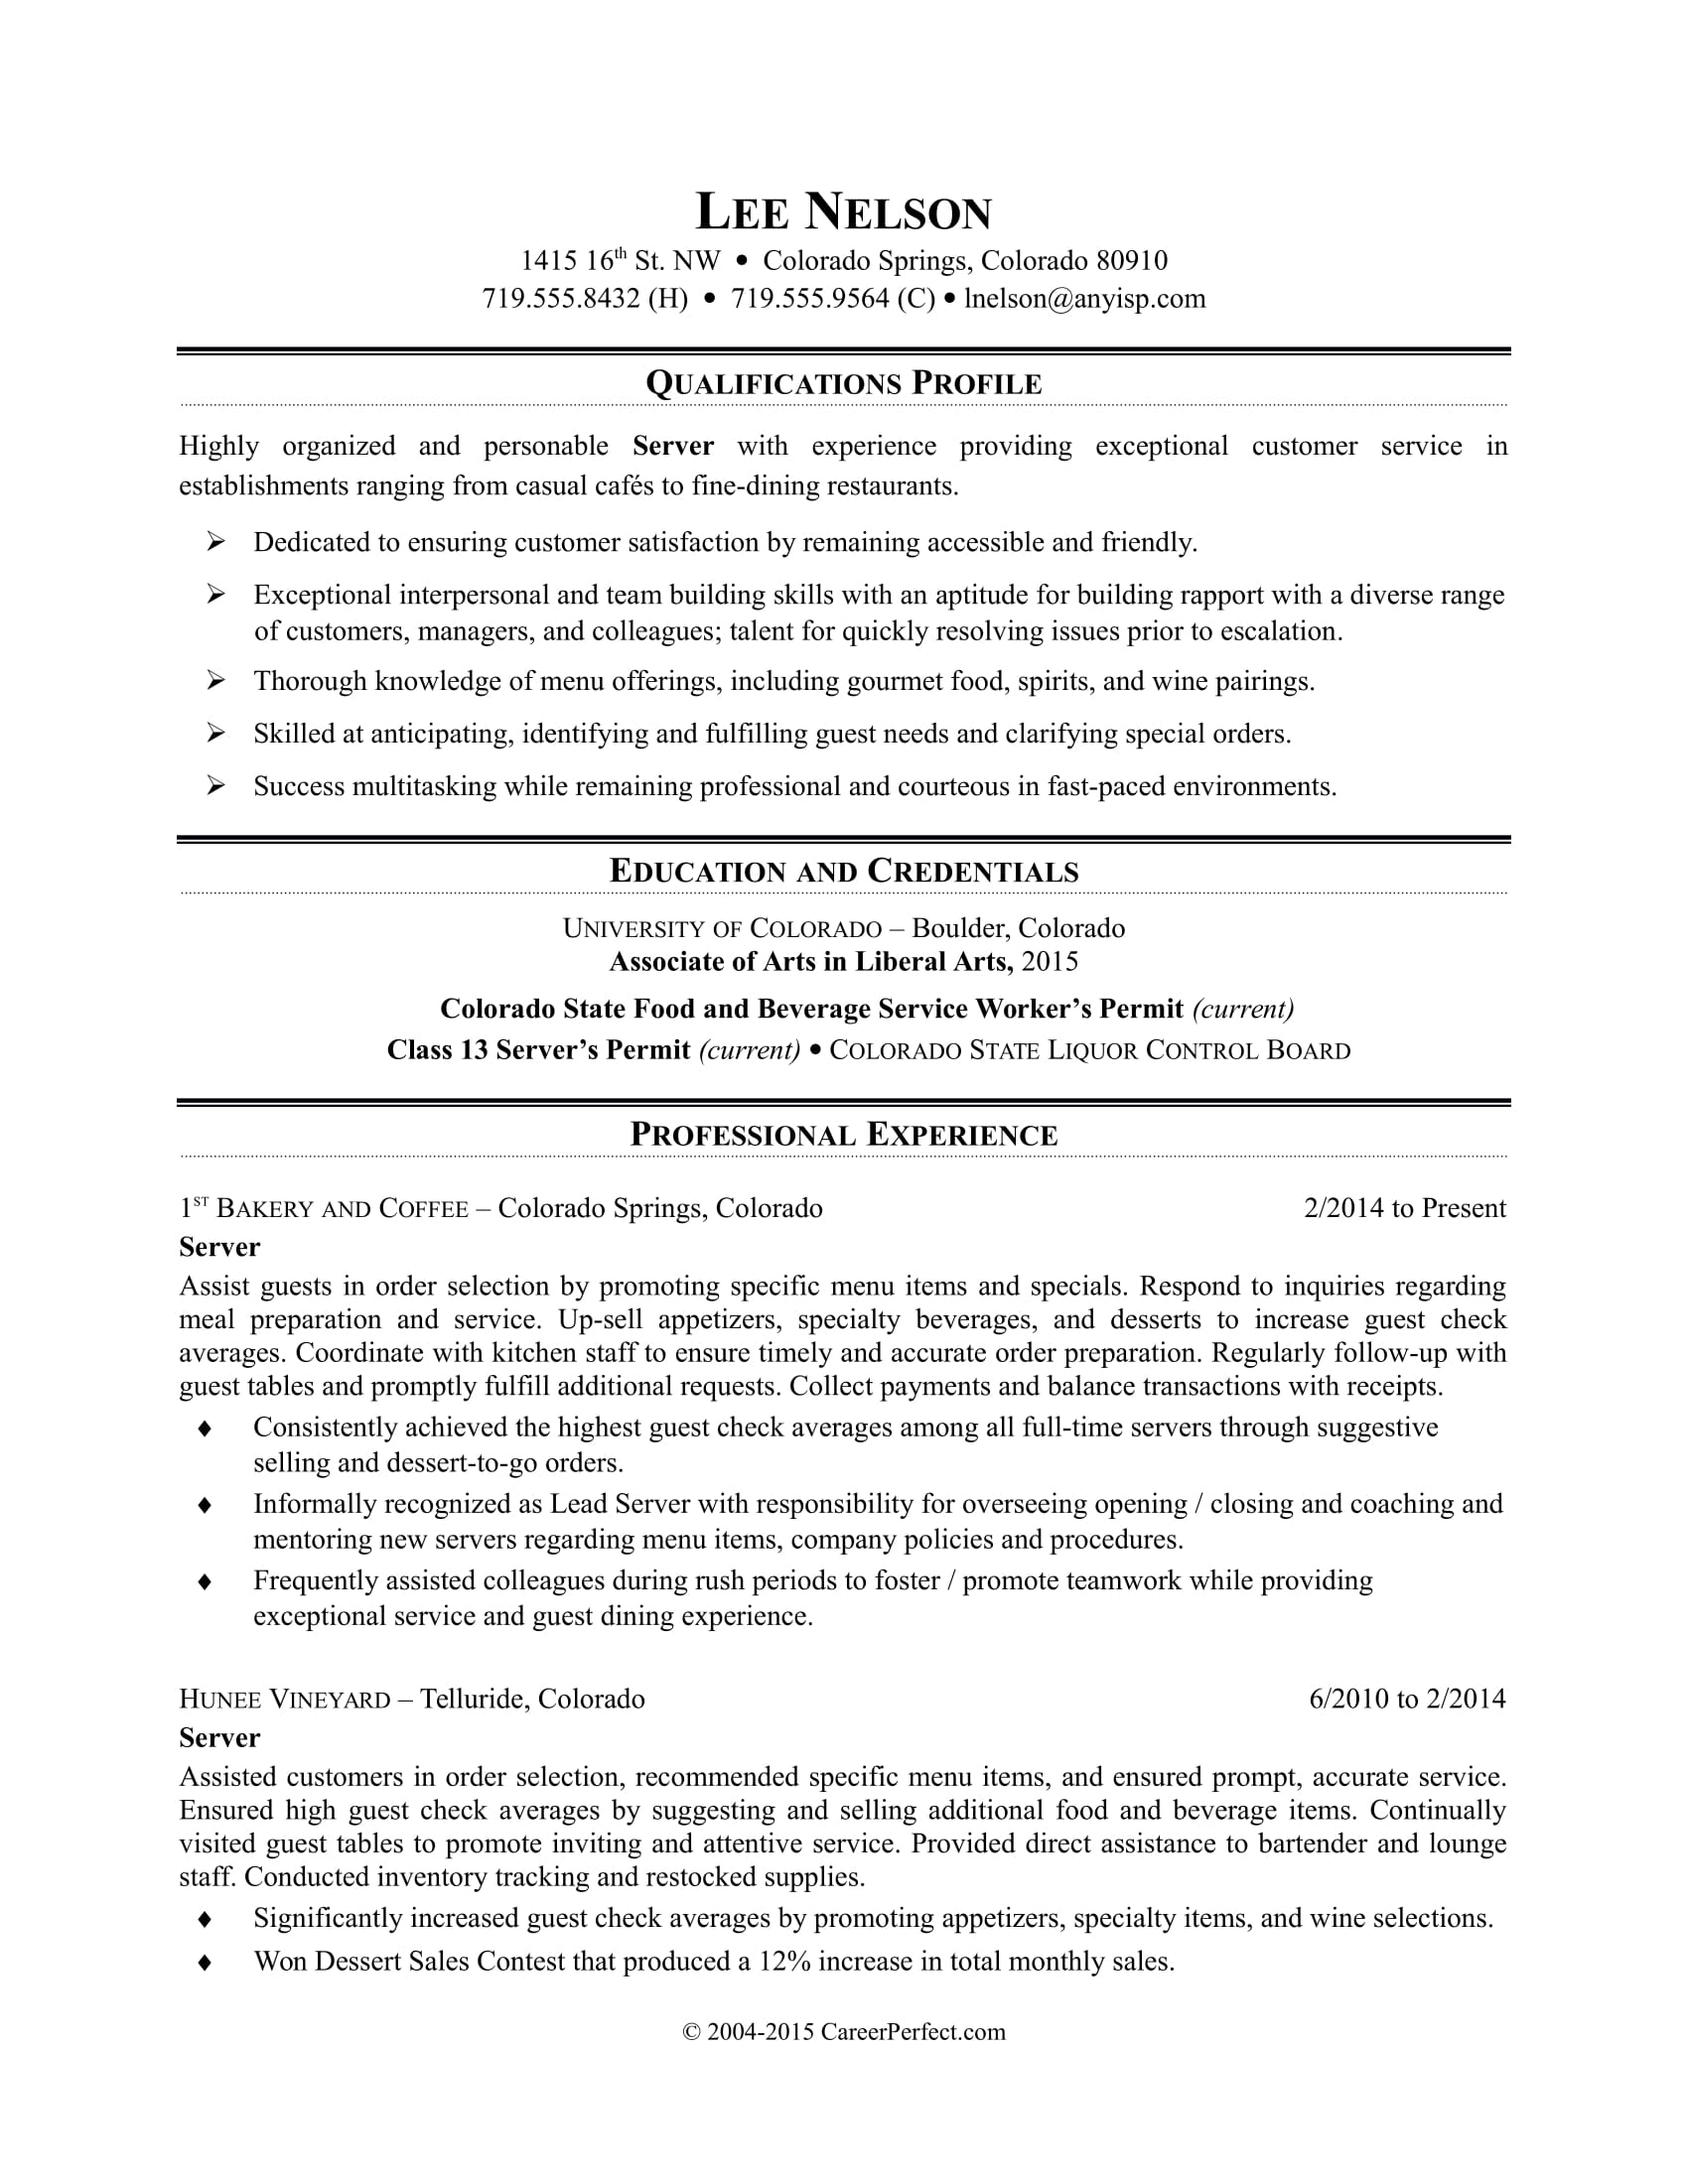 restaurant server resume sample monster objective examples for food services student pet Resume Resume Objective Examples For Food Services